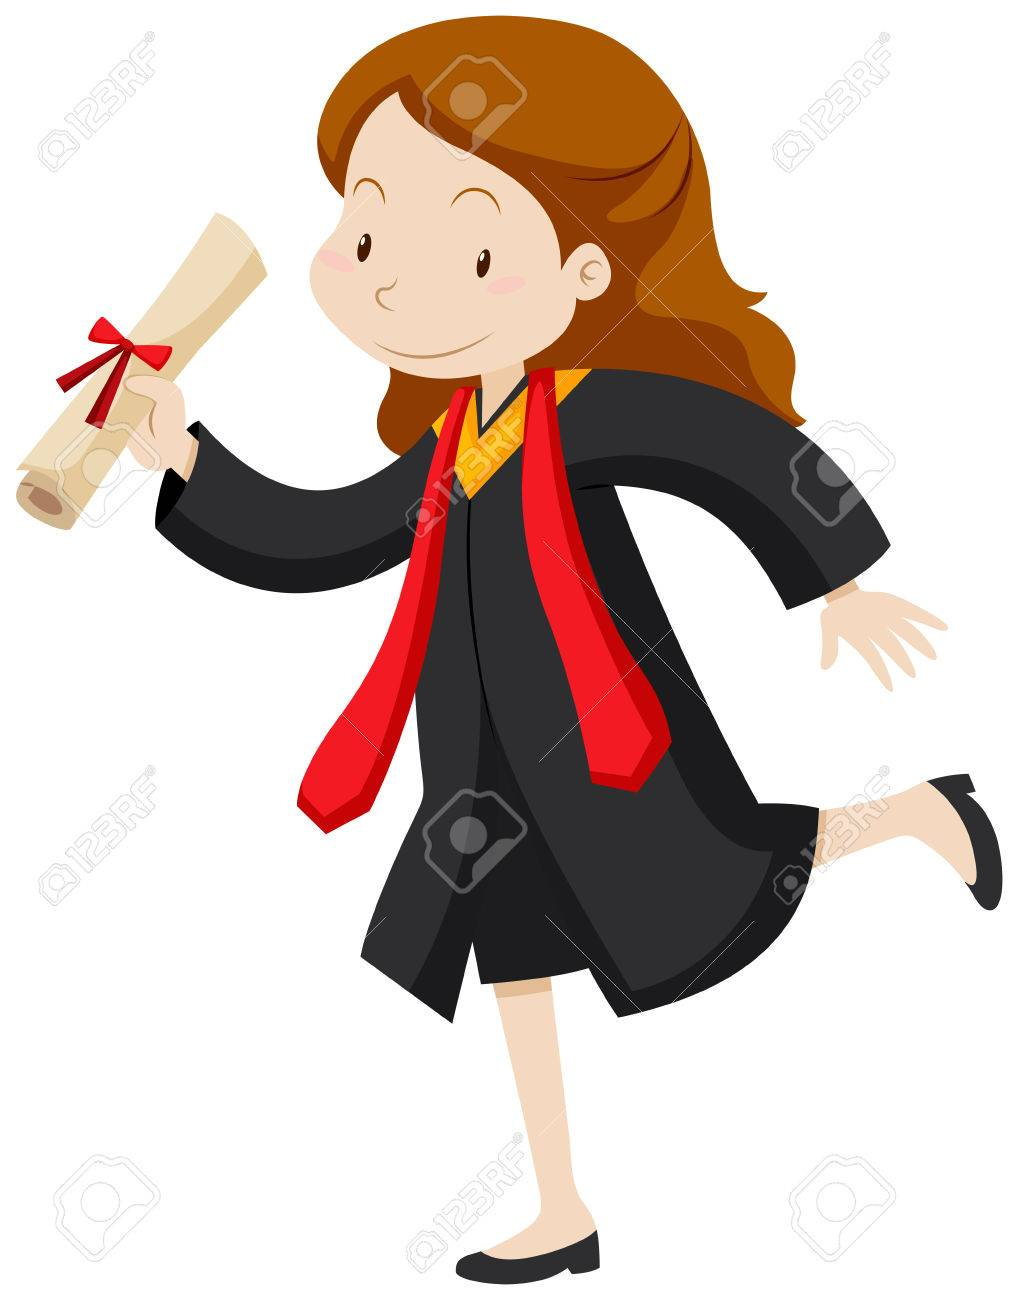 1018x1300 Woman In Graduation Gown Holding Degree Illustration Royalty Free